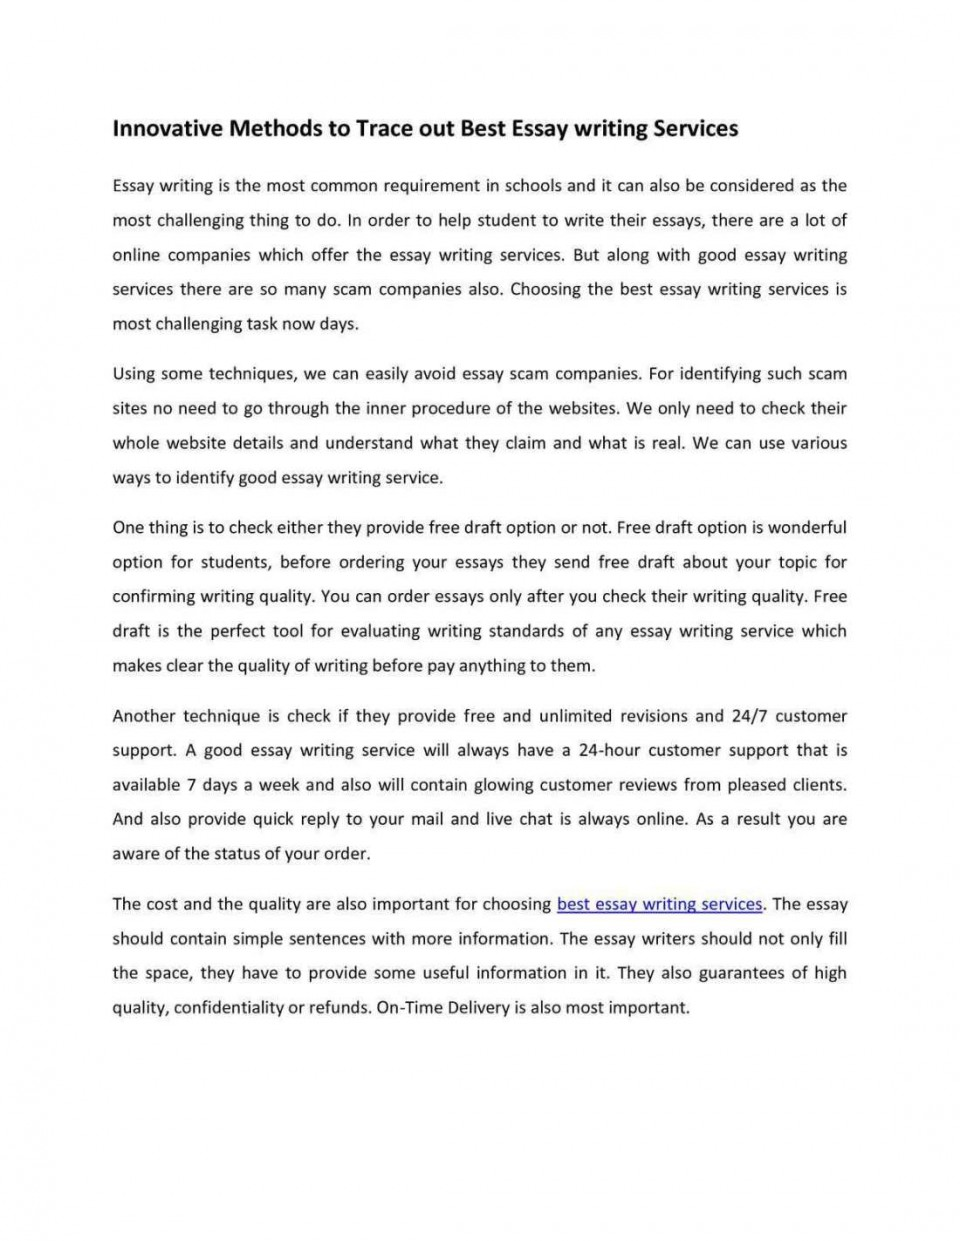 008 Research Paper Argumentative Proposal Example Archaicawful Sample 960